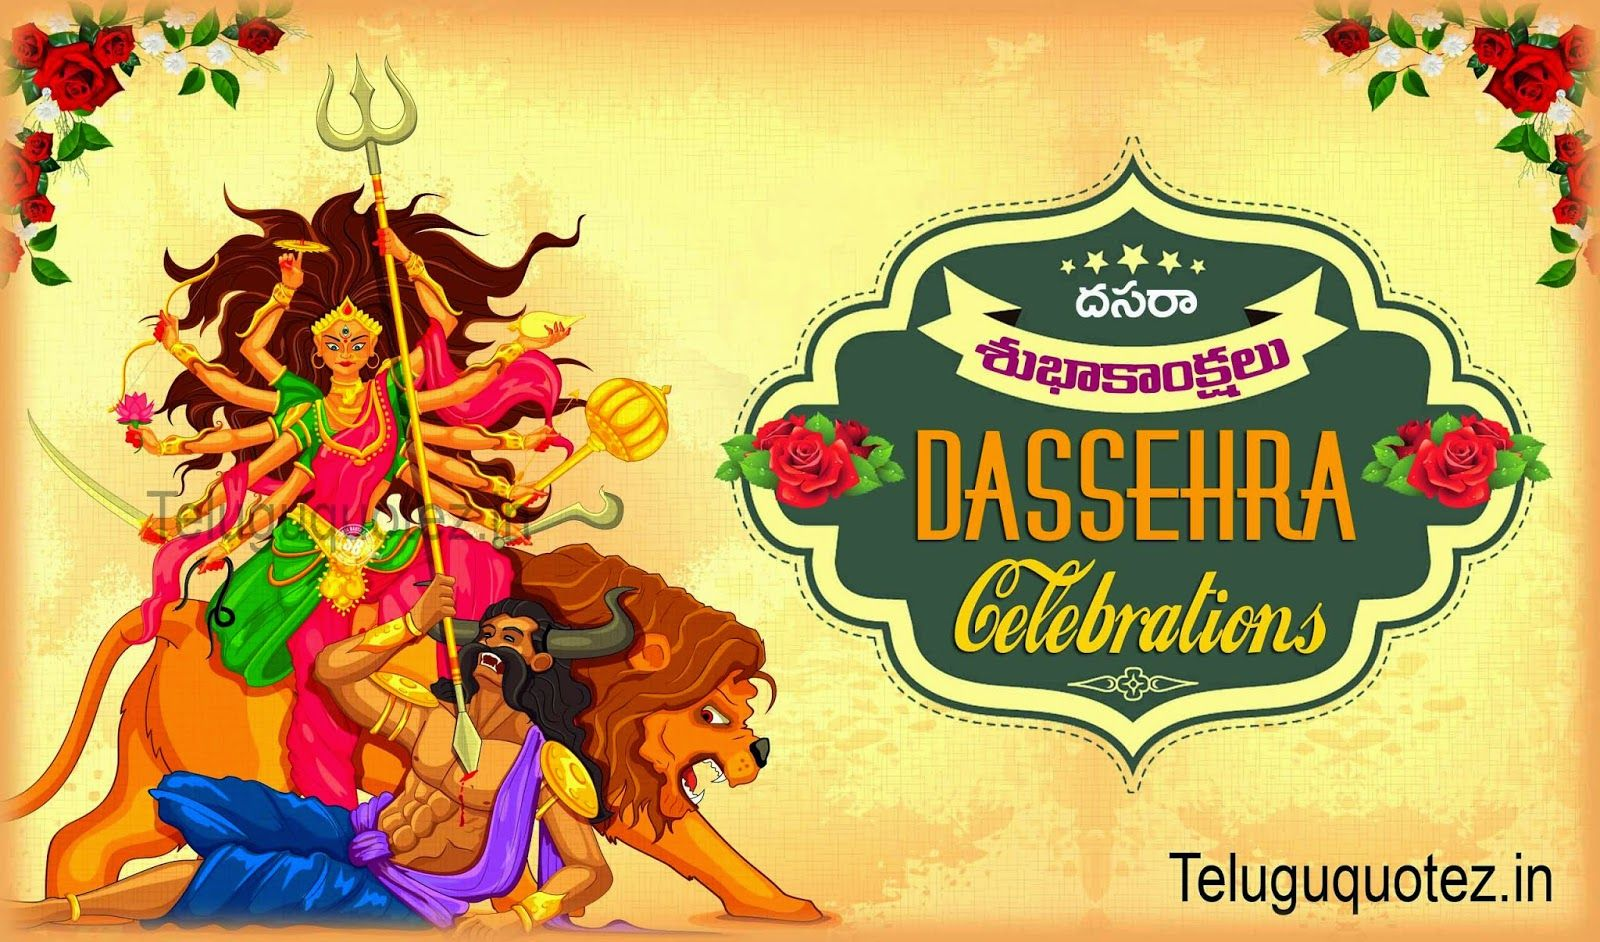 Dussehra greetings sms text messages in telugu dussehra quotes dussehra greetings sms text messages in telugu m4hsunfo